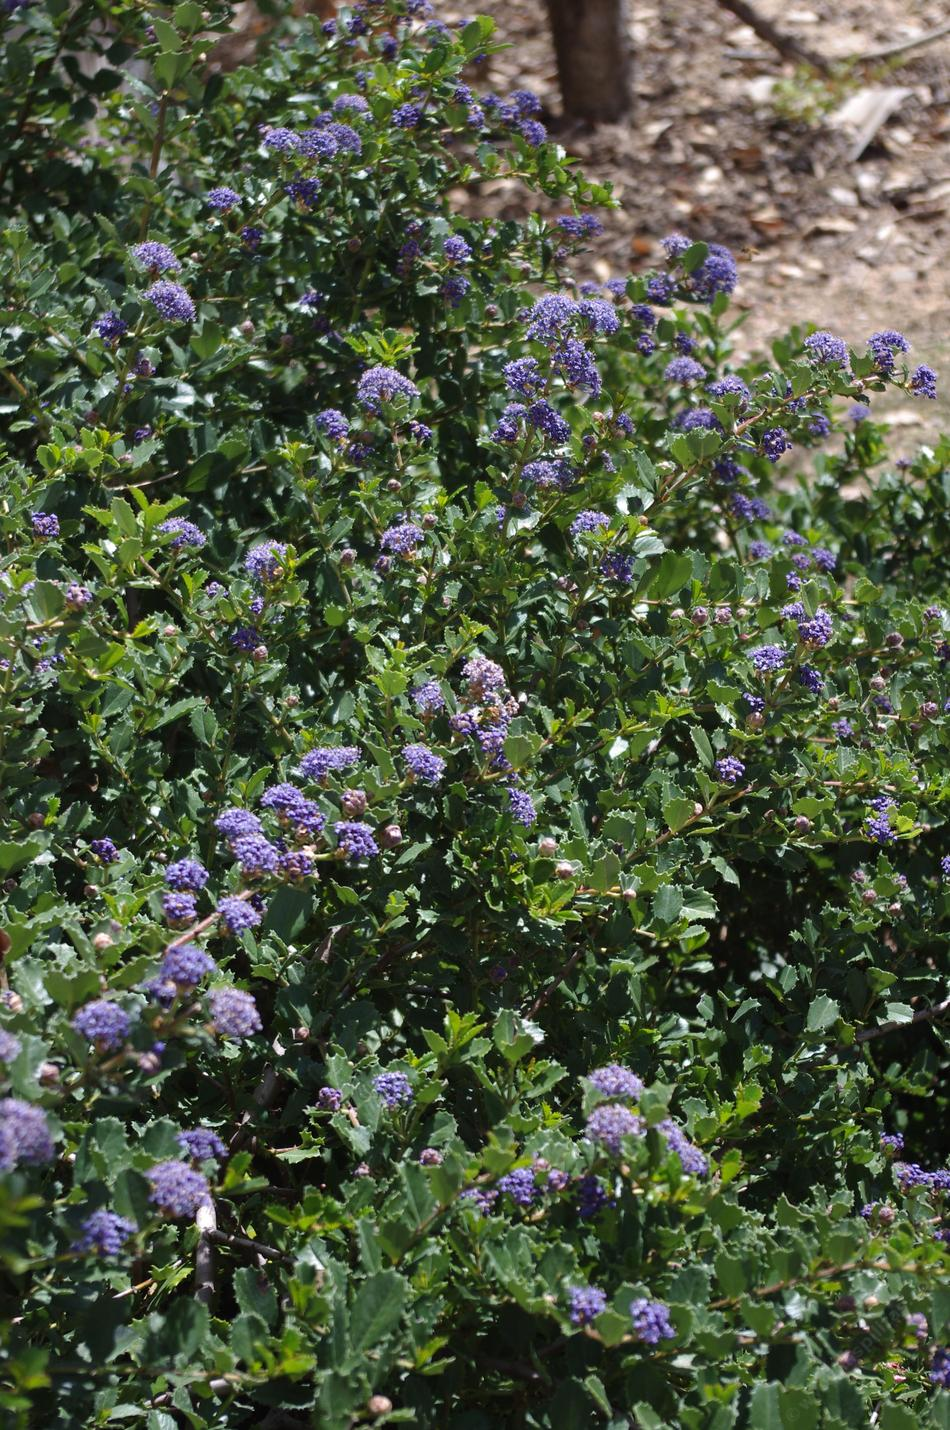 Ceanothus gloriosus hearts desire mountain lilac ceanothus gloriosus hearts desire makes a great small mounding groundcover excellent as a sidewalk border izmirmasajfo